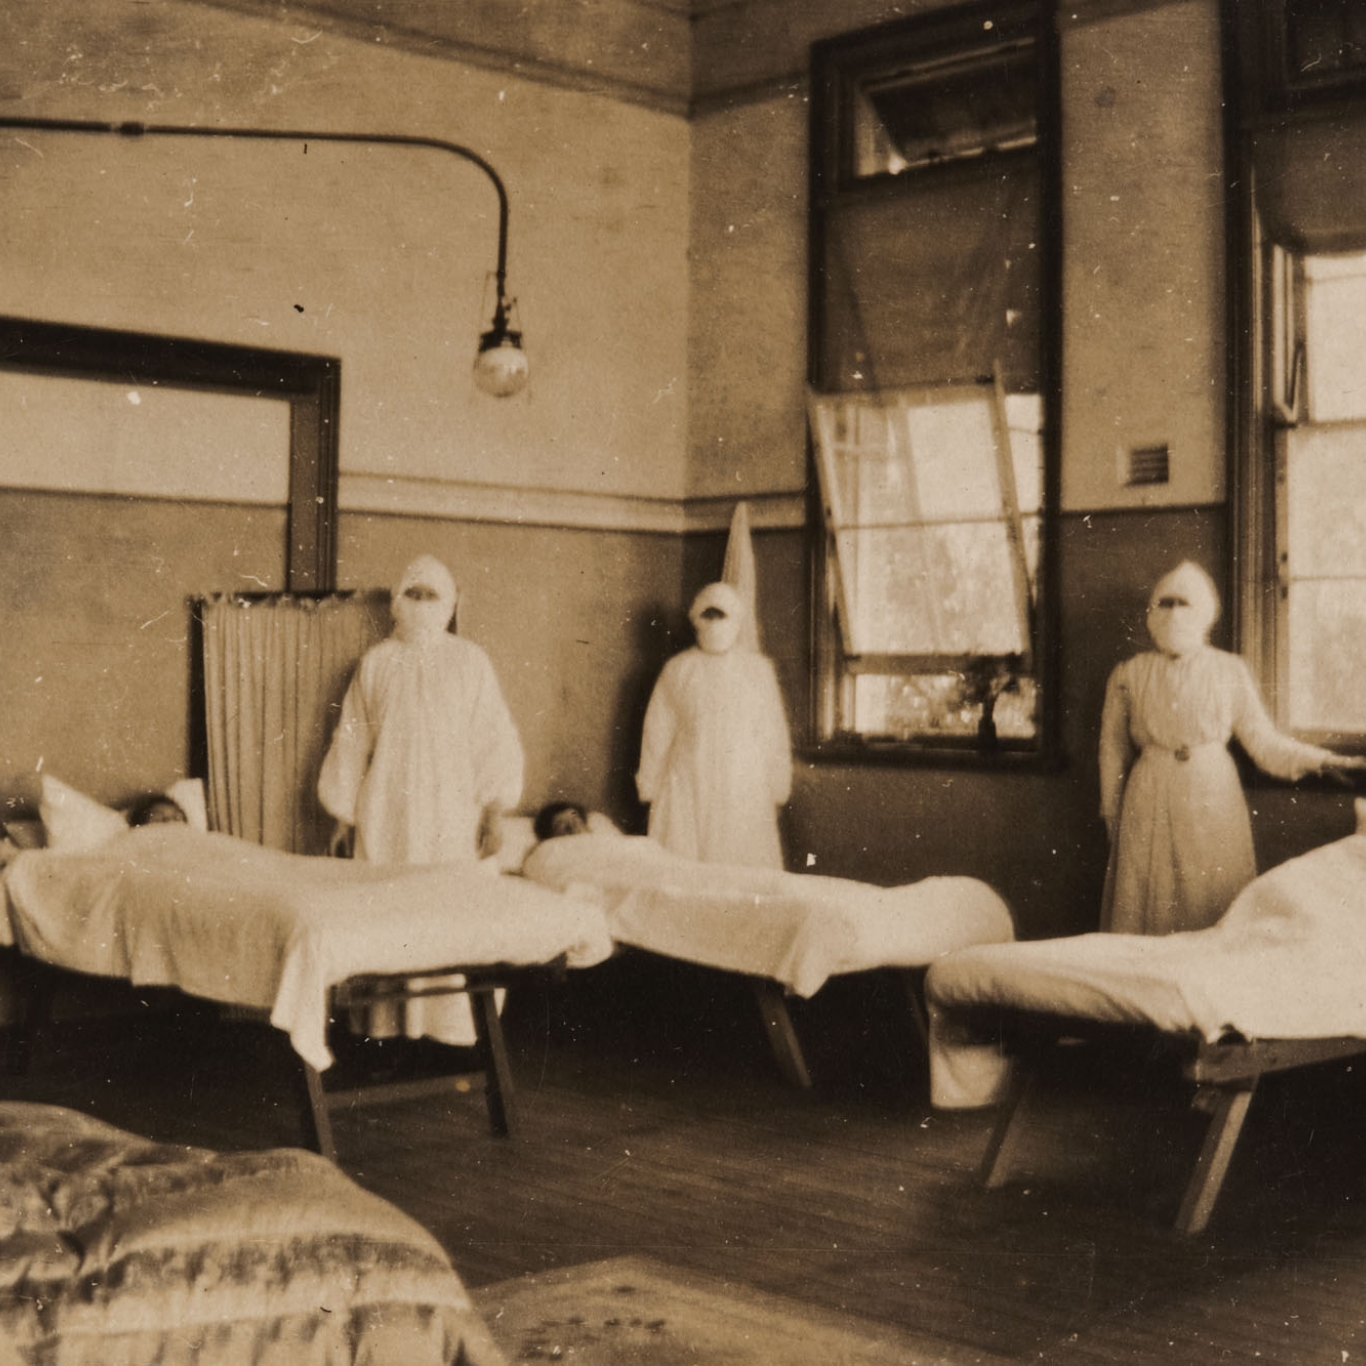 Four women in masks and nurse uniforms in room set up with hospital beds.